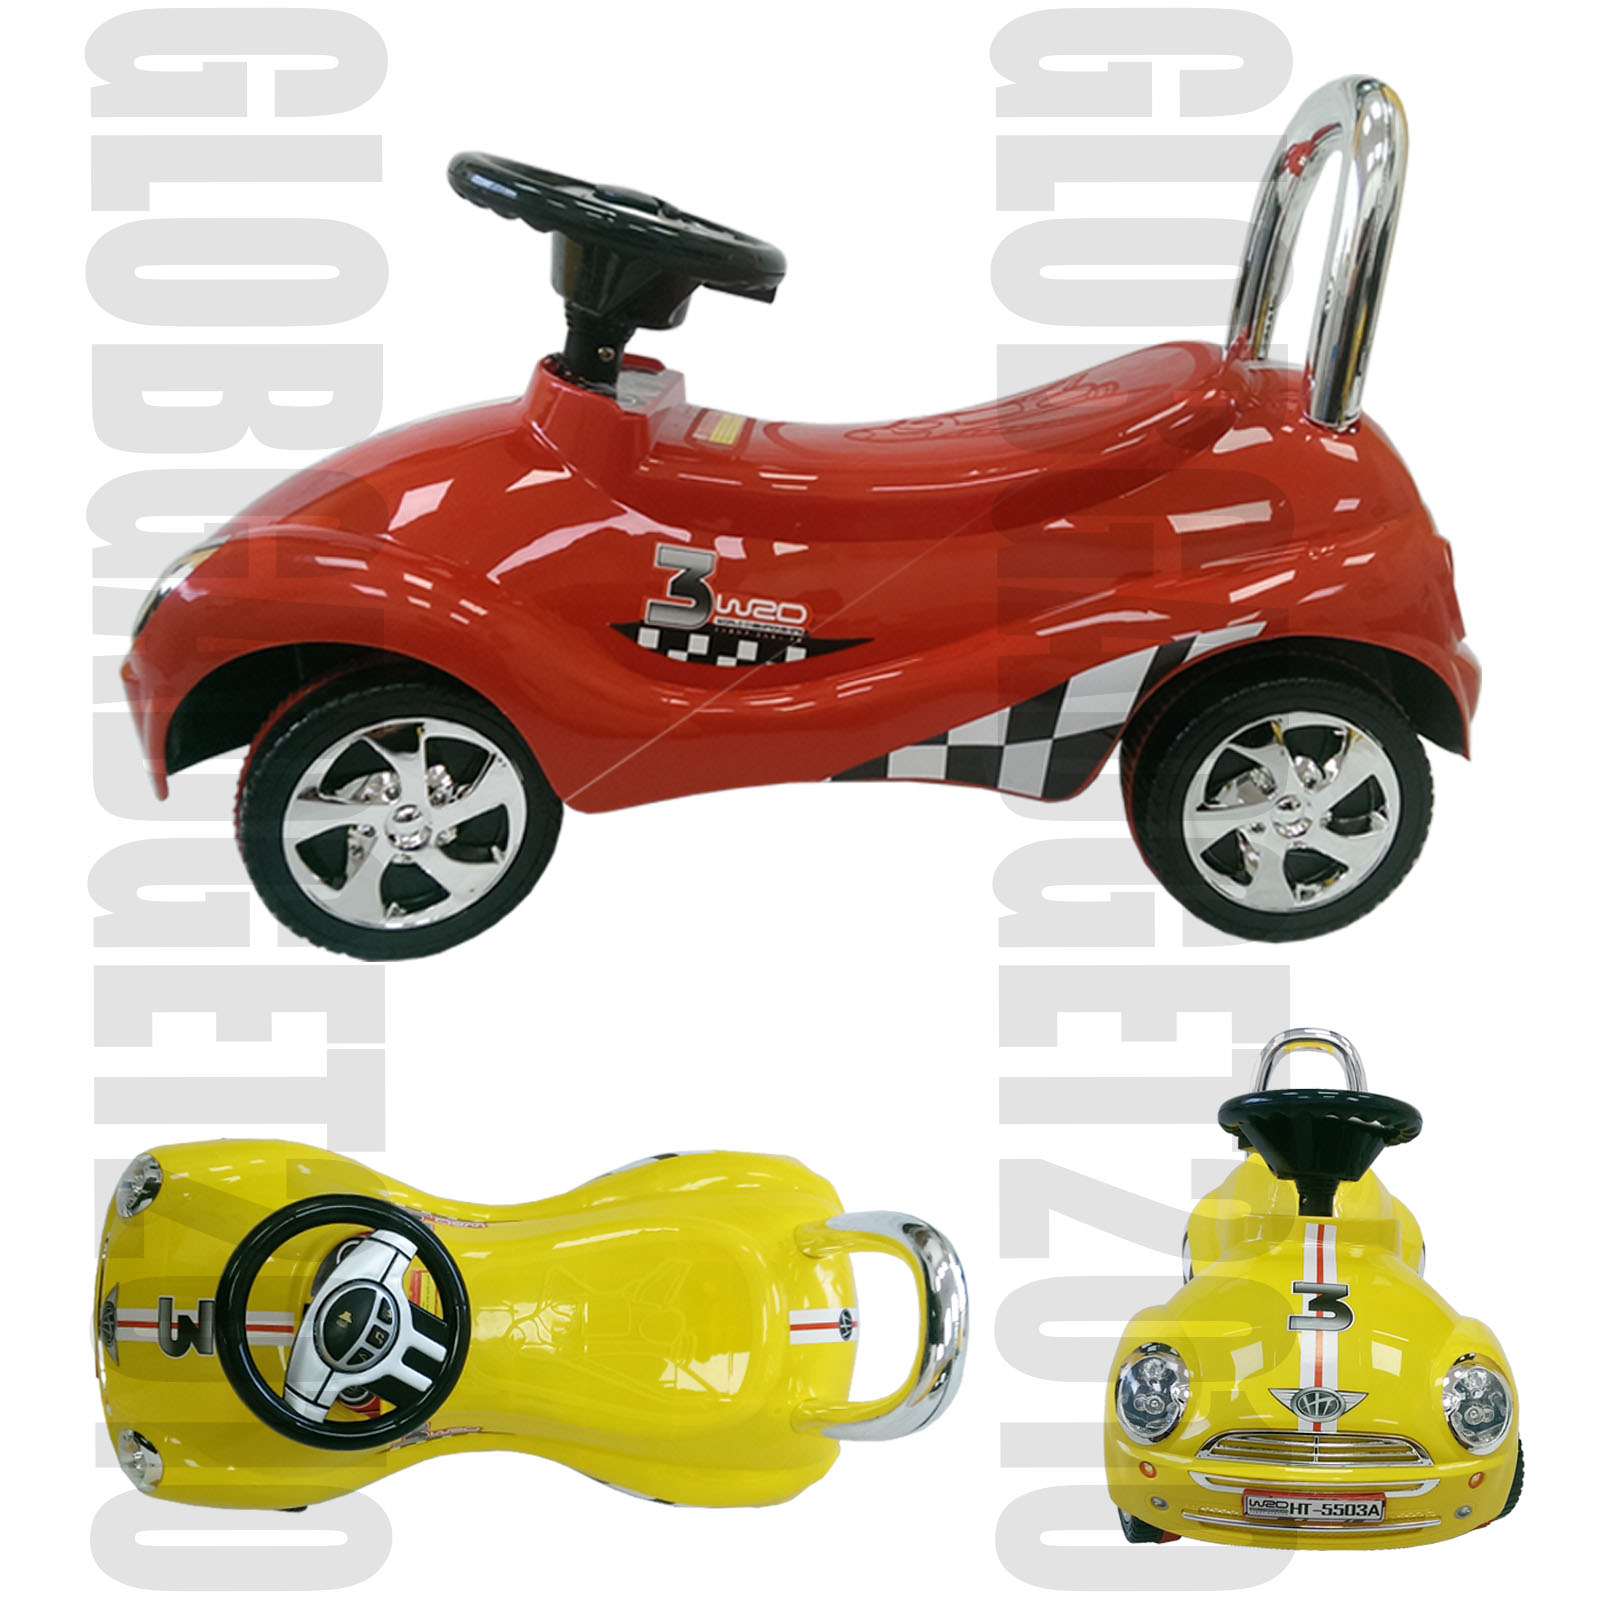 Baby Toy Car : Kids toy cars children ride on baby racer toddler push car